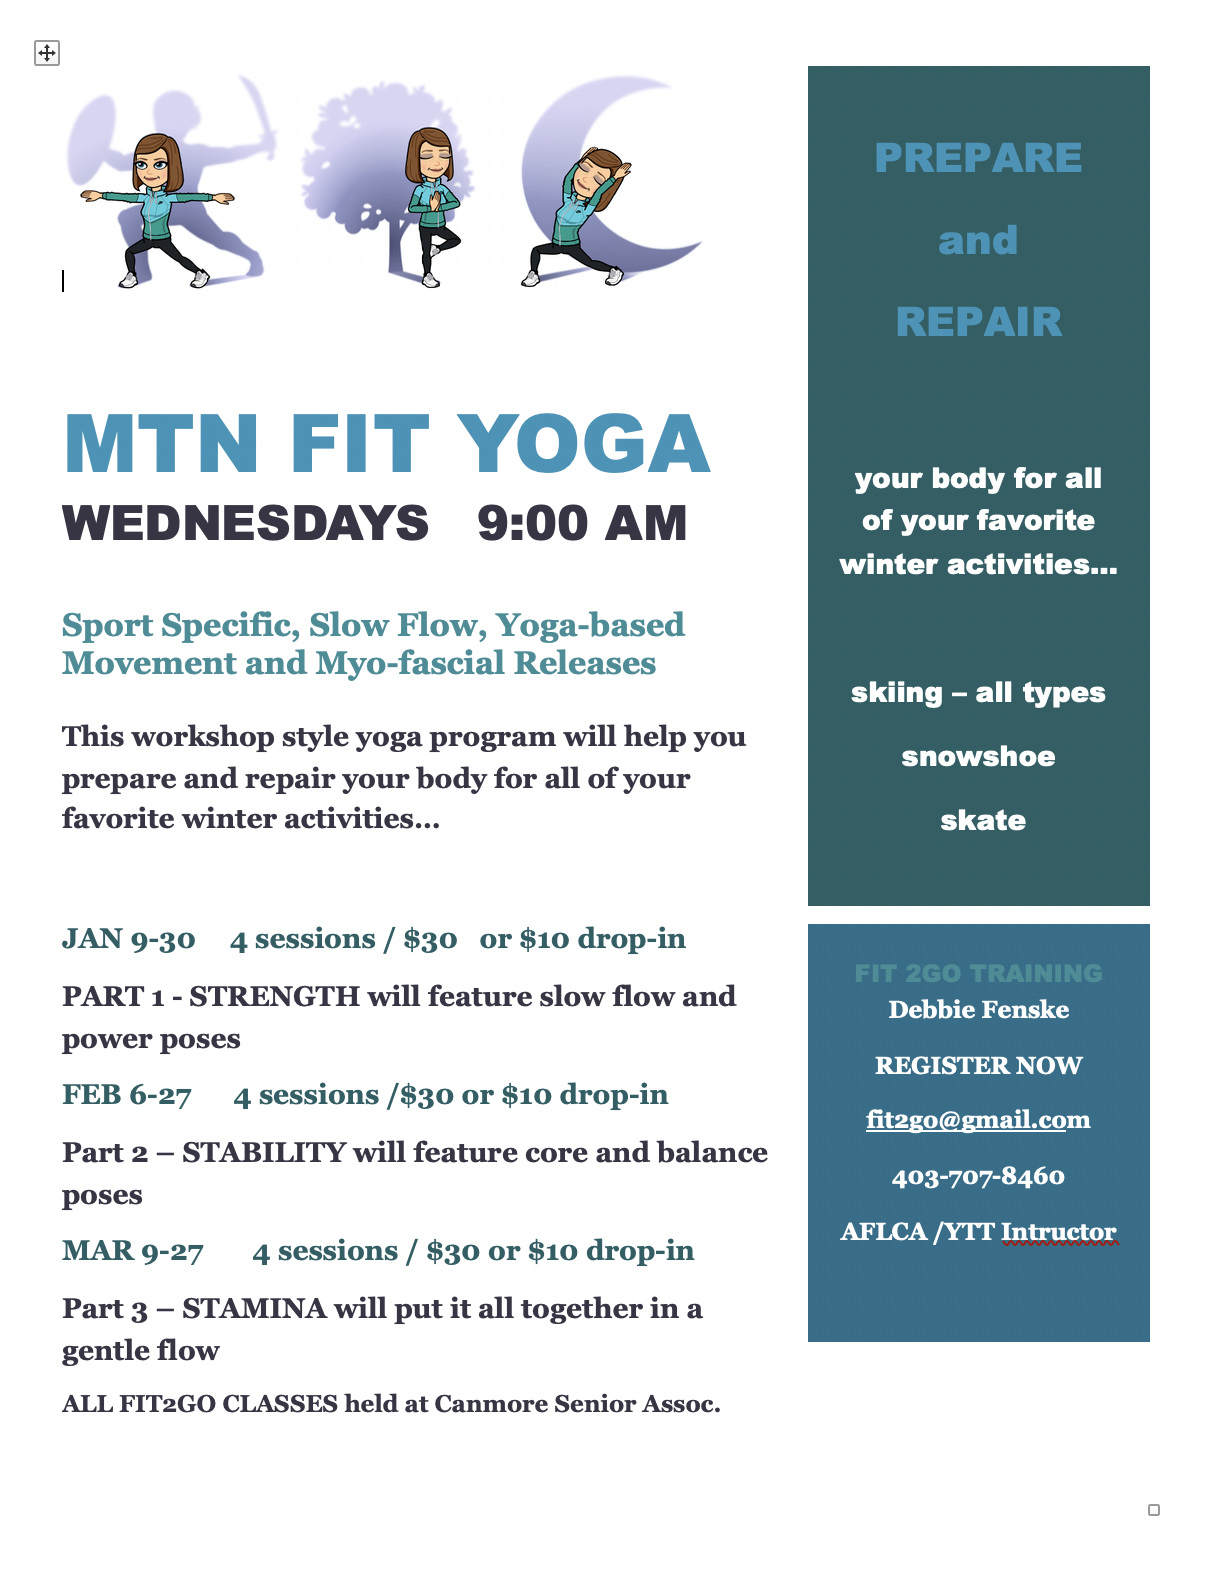 Mtn Fit Yoga Wednesdays